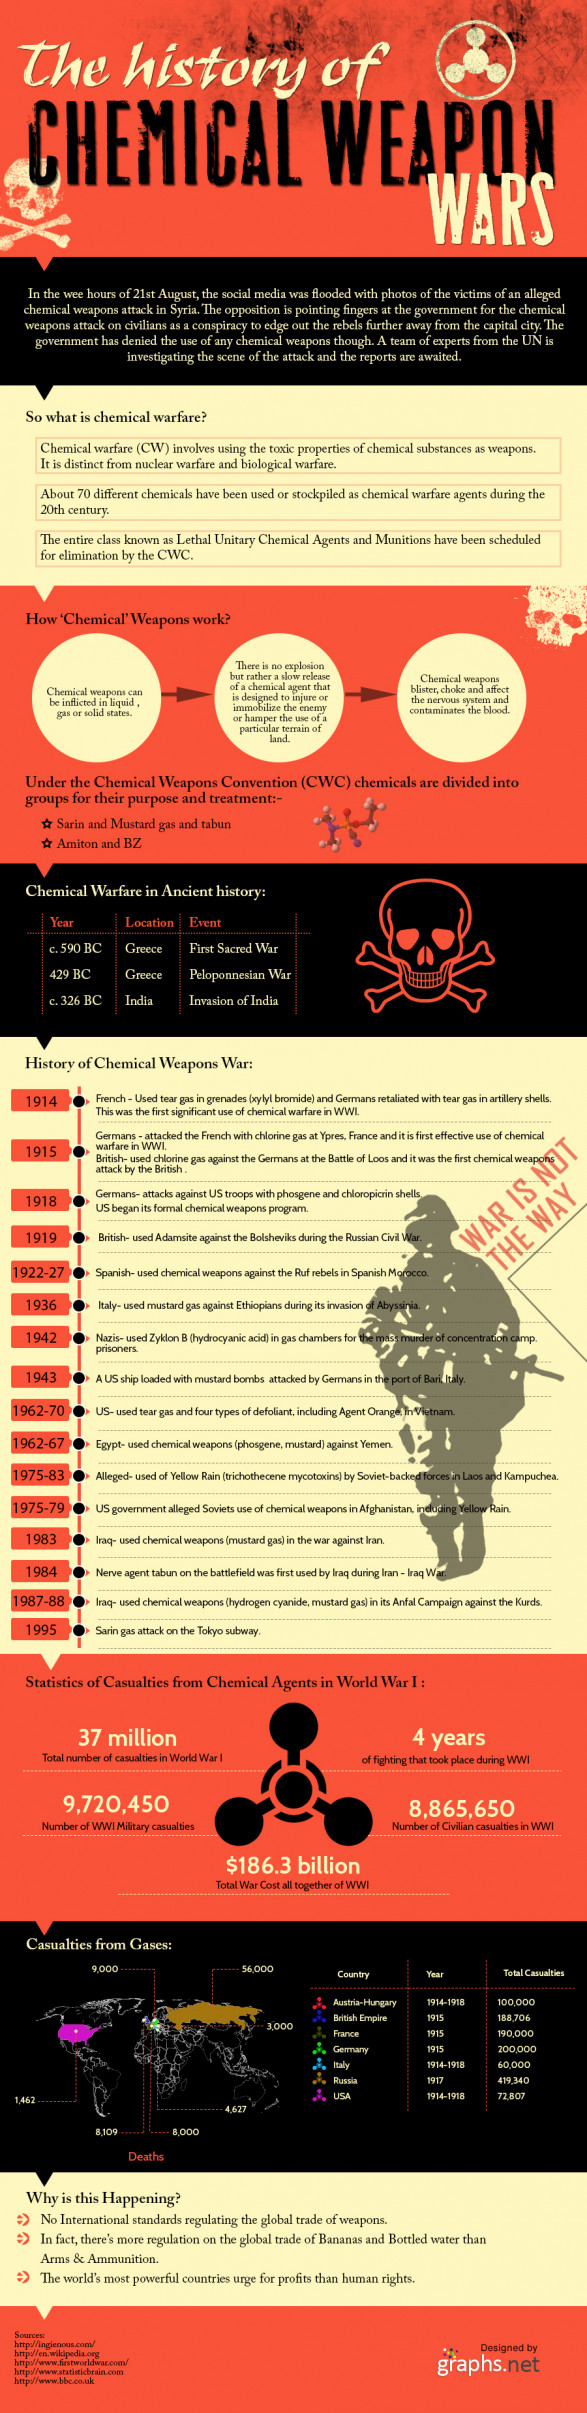 The History of Chemical Weapon Wars